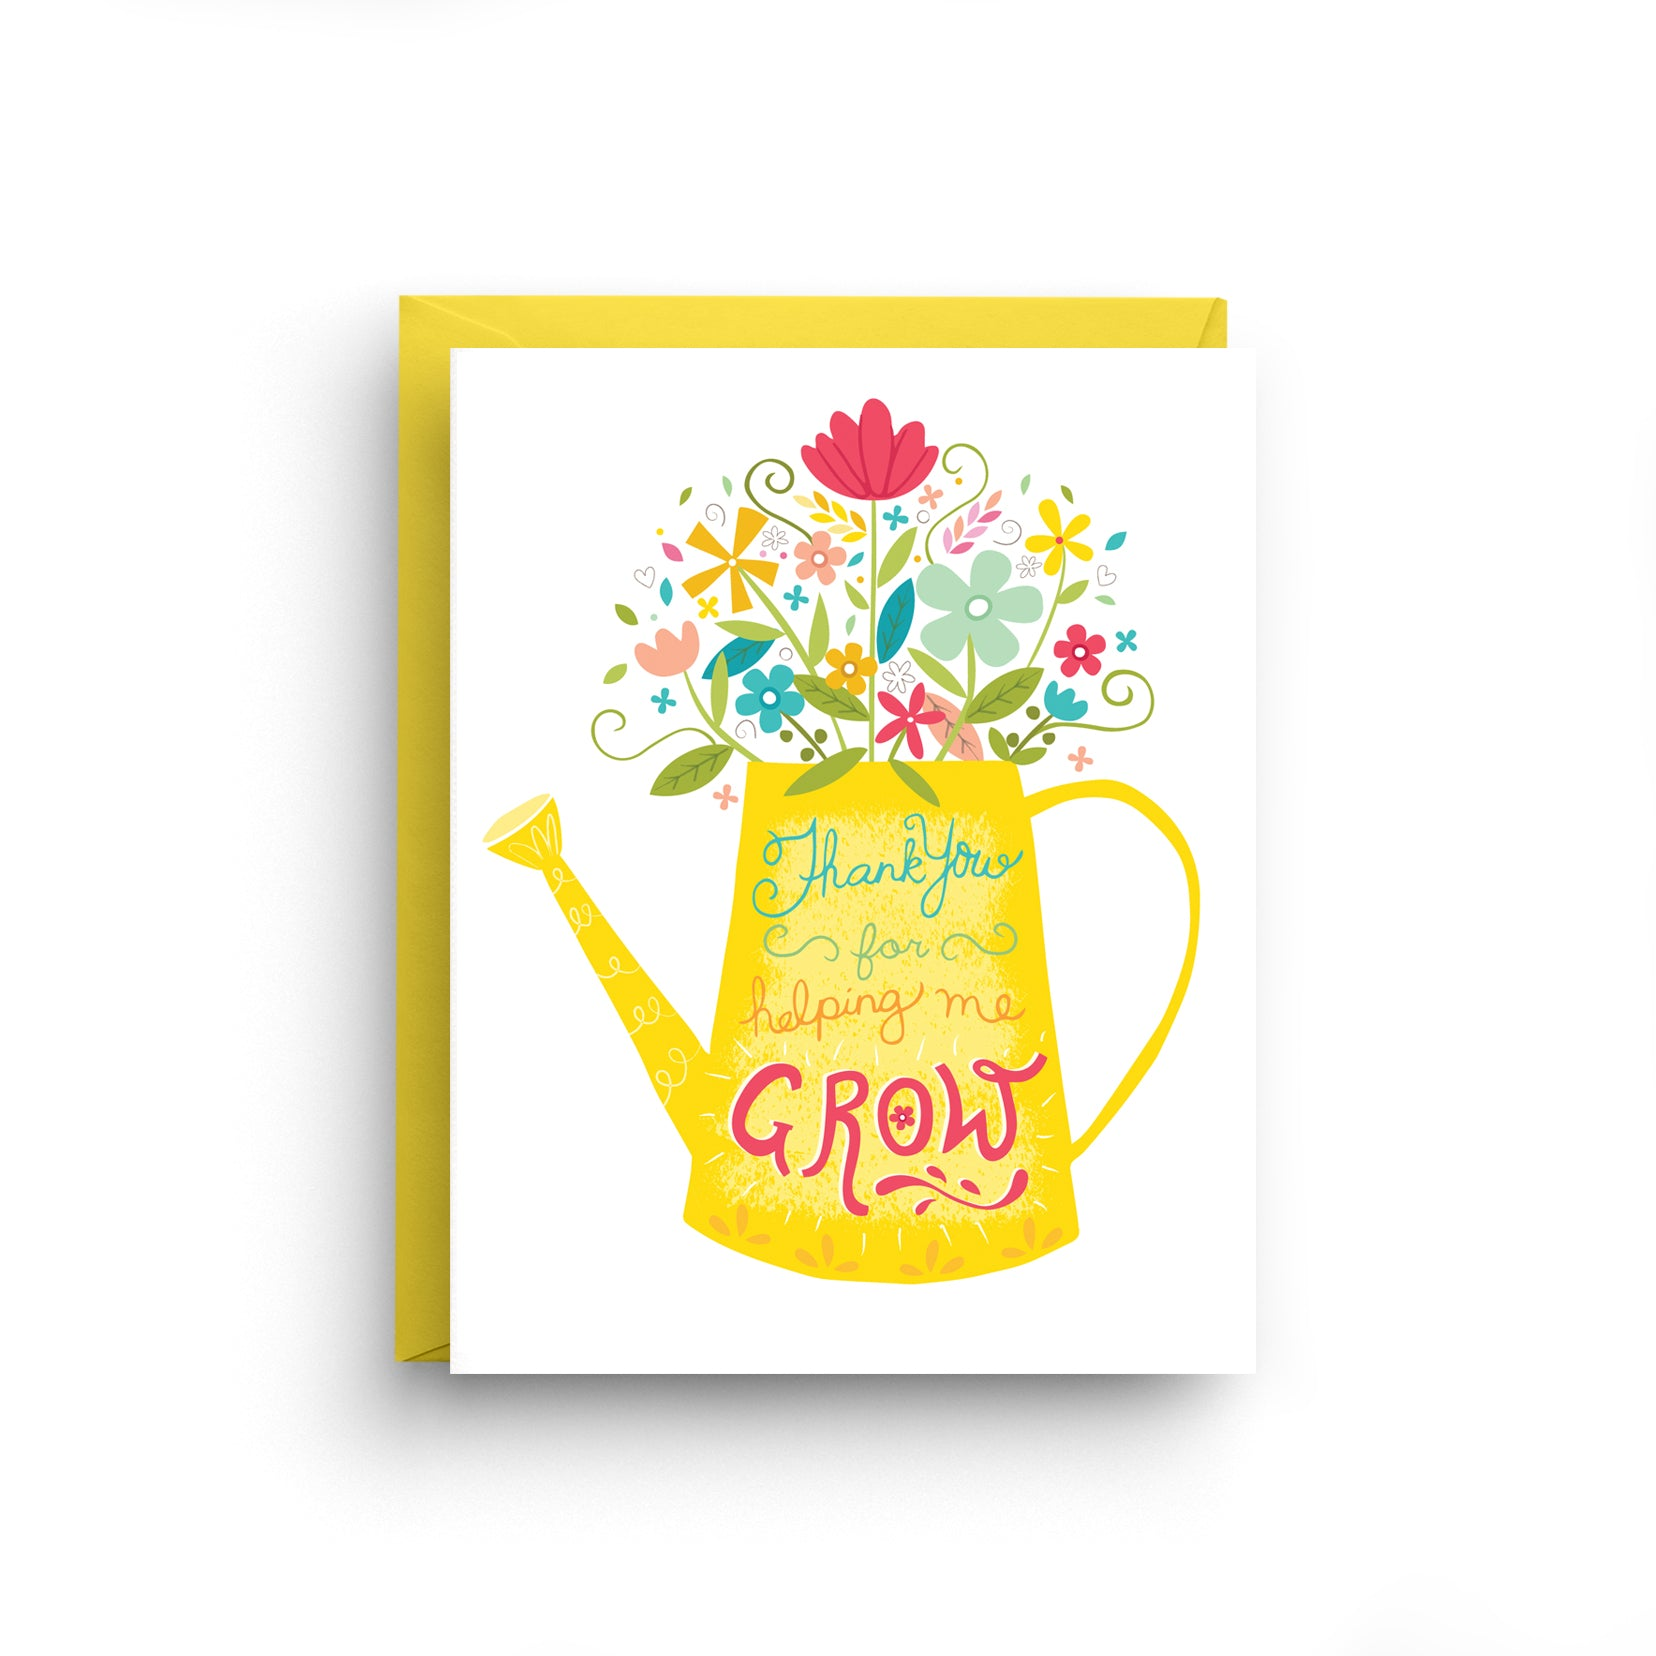 floral thank you, thank you card, helping me grow, boxed set, floral stationery, thank you stationery, grandparent card, appreciation card, yellow stationery, hand lettered card, card for mom, card for teacher, card for parent